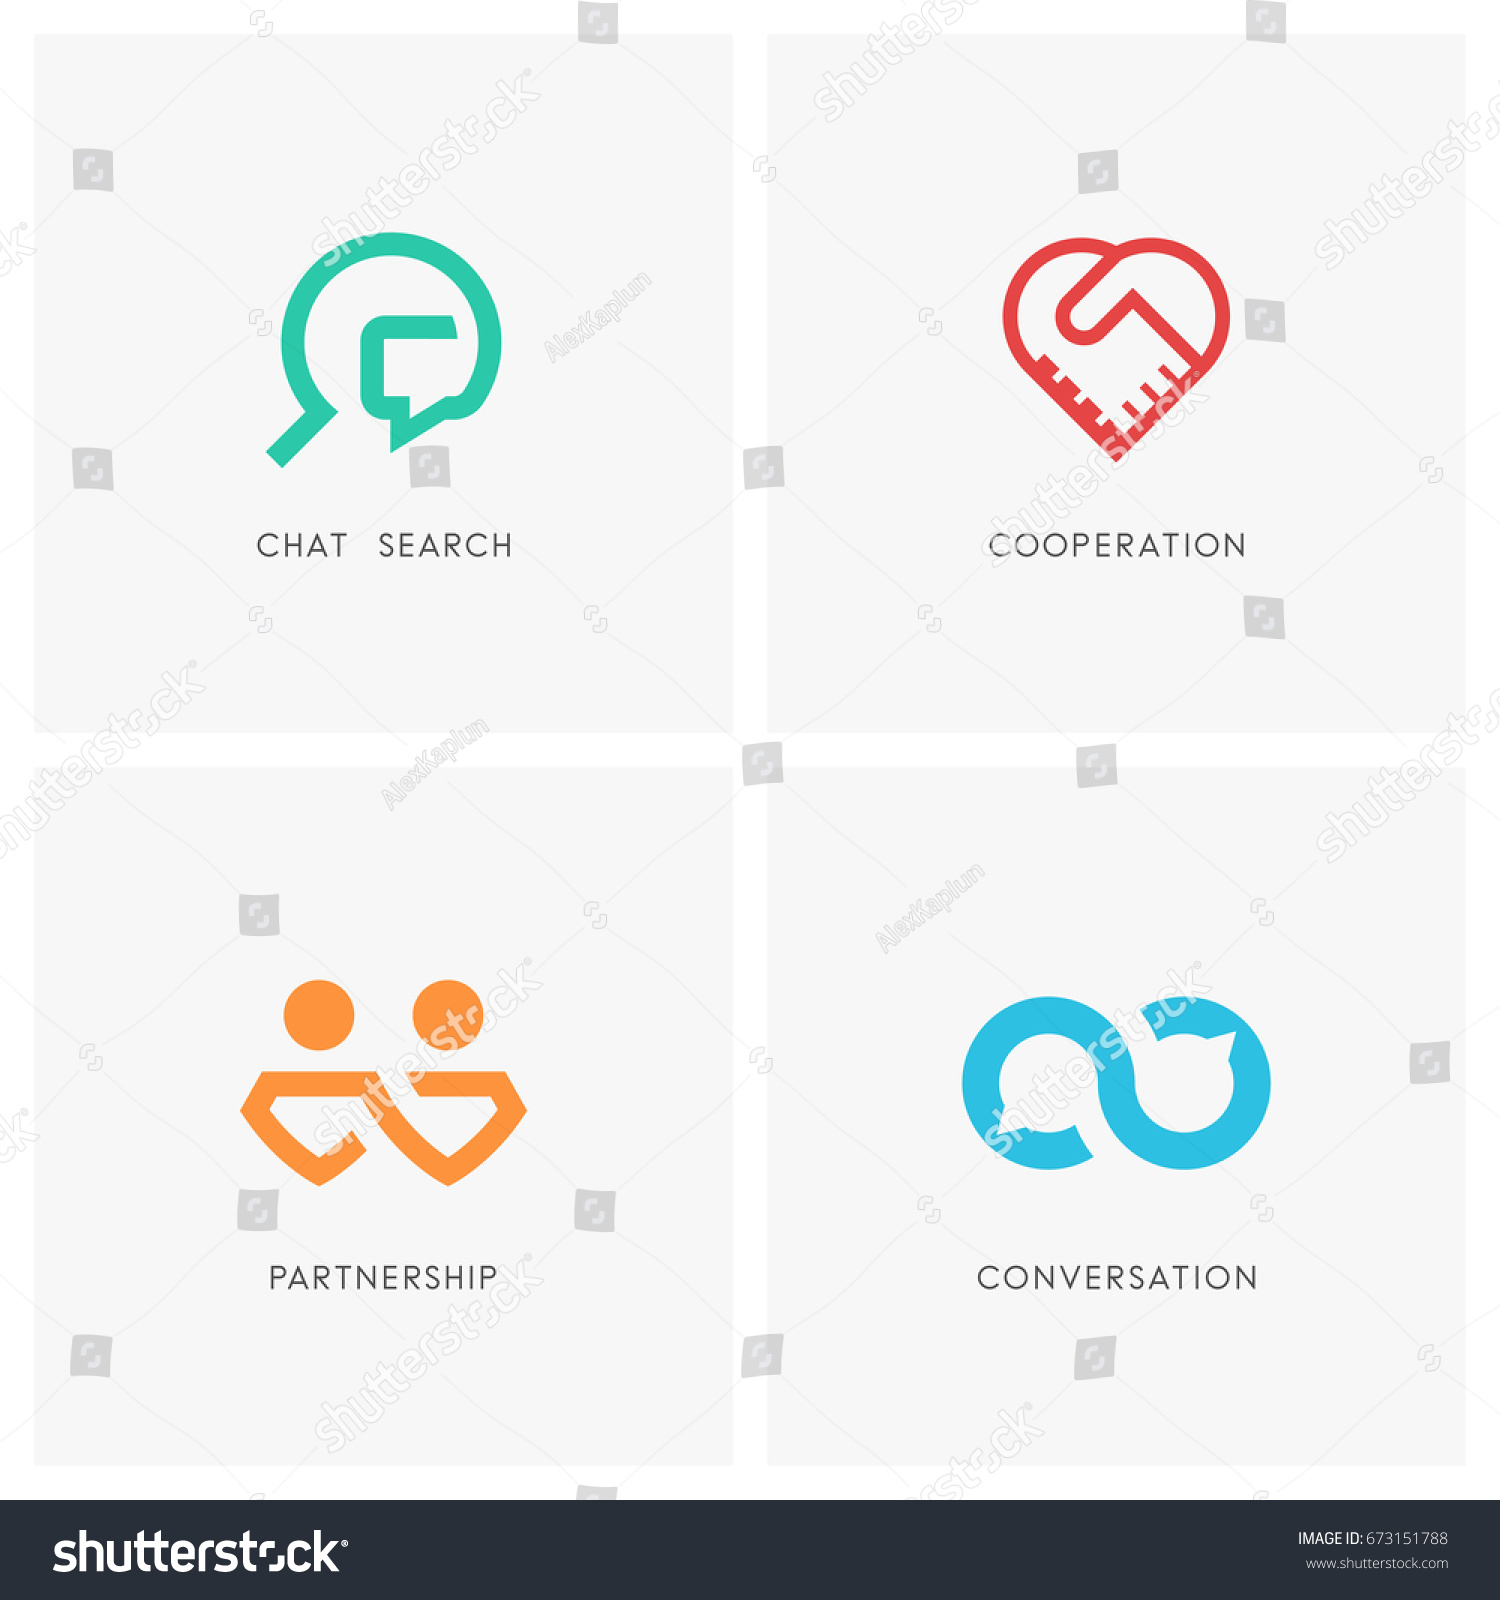 Gratis Juridisch Advies Chat Cooperation Logo Set Chat Search Handshake Stockvector 673151788